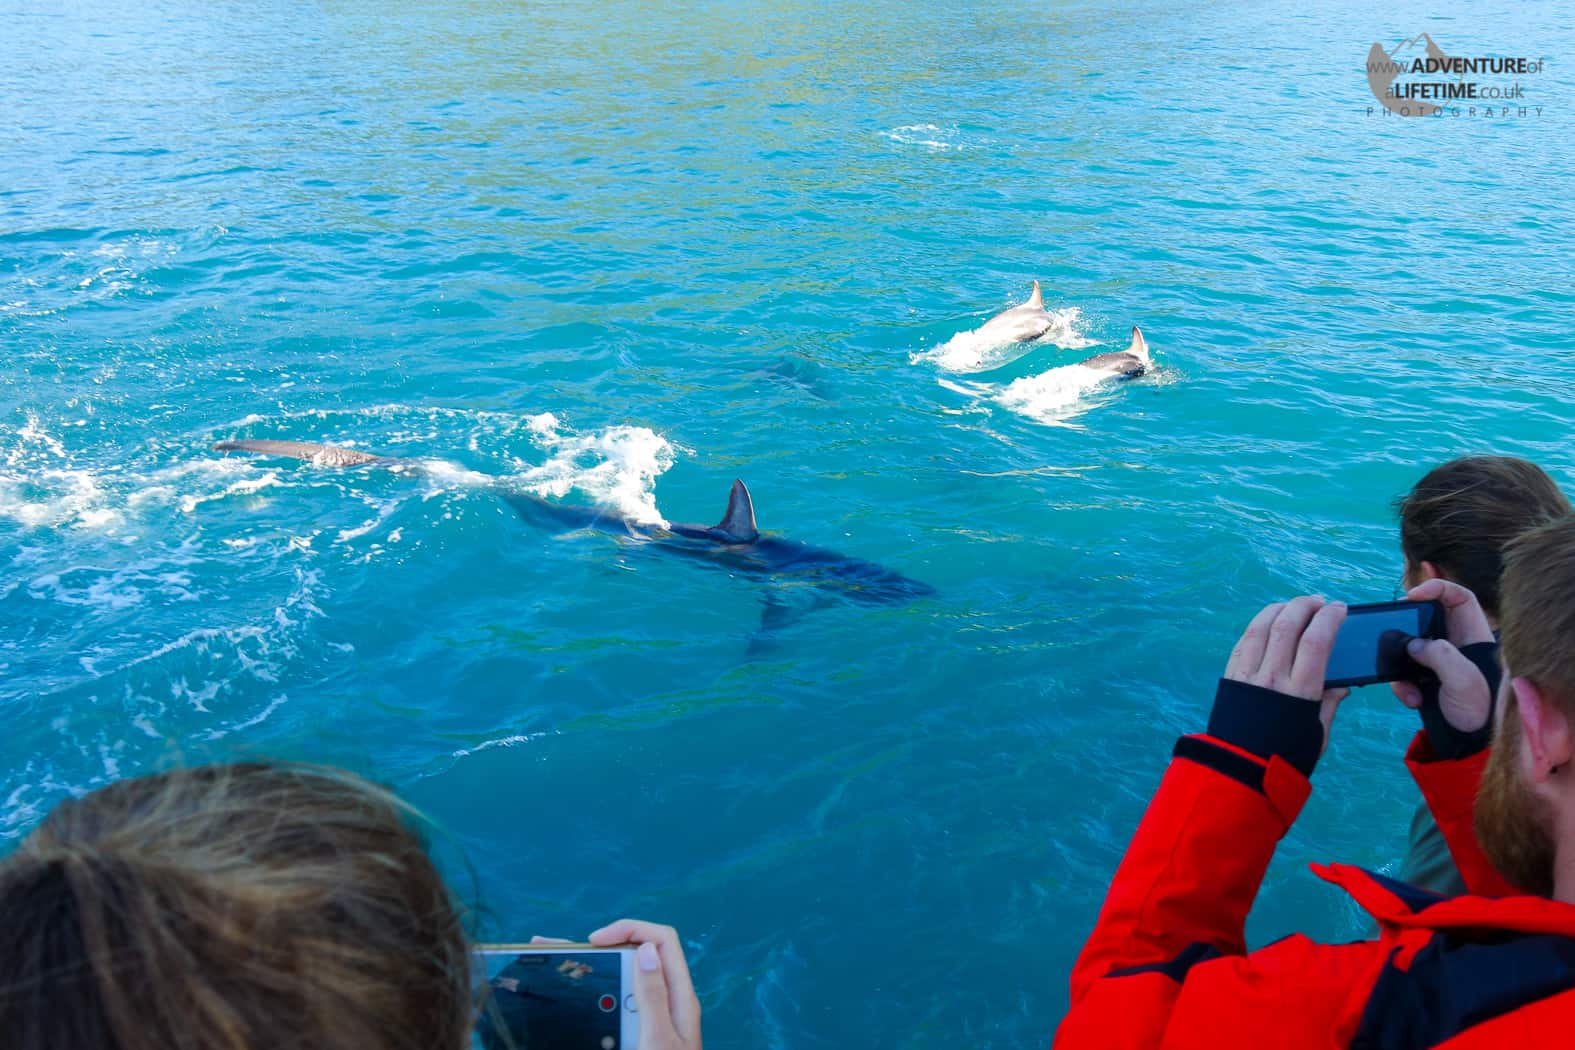 Thresher Shark and Dolphins in Kaikoura